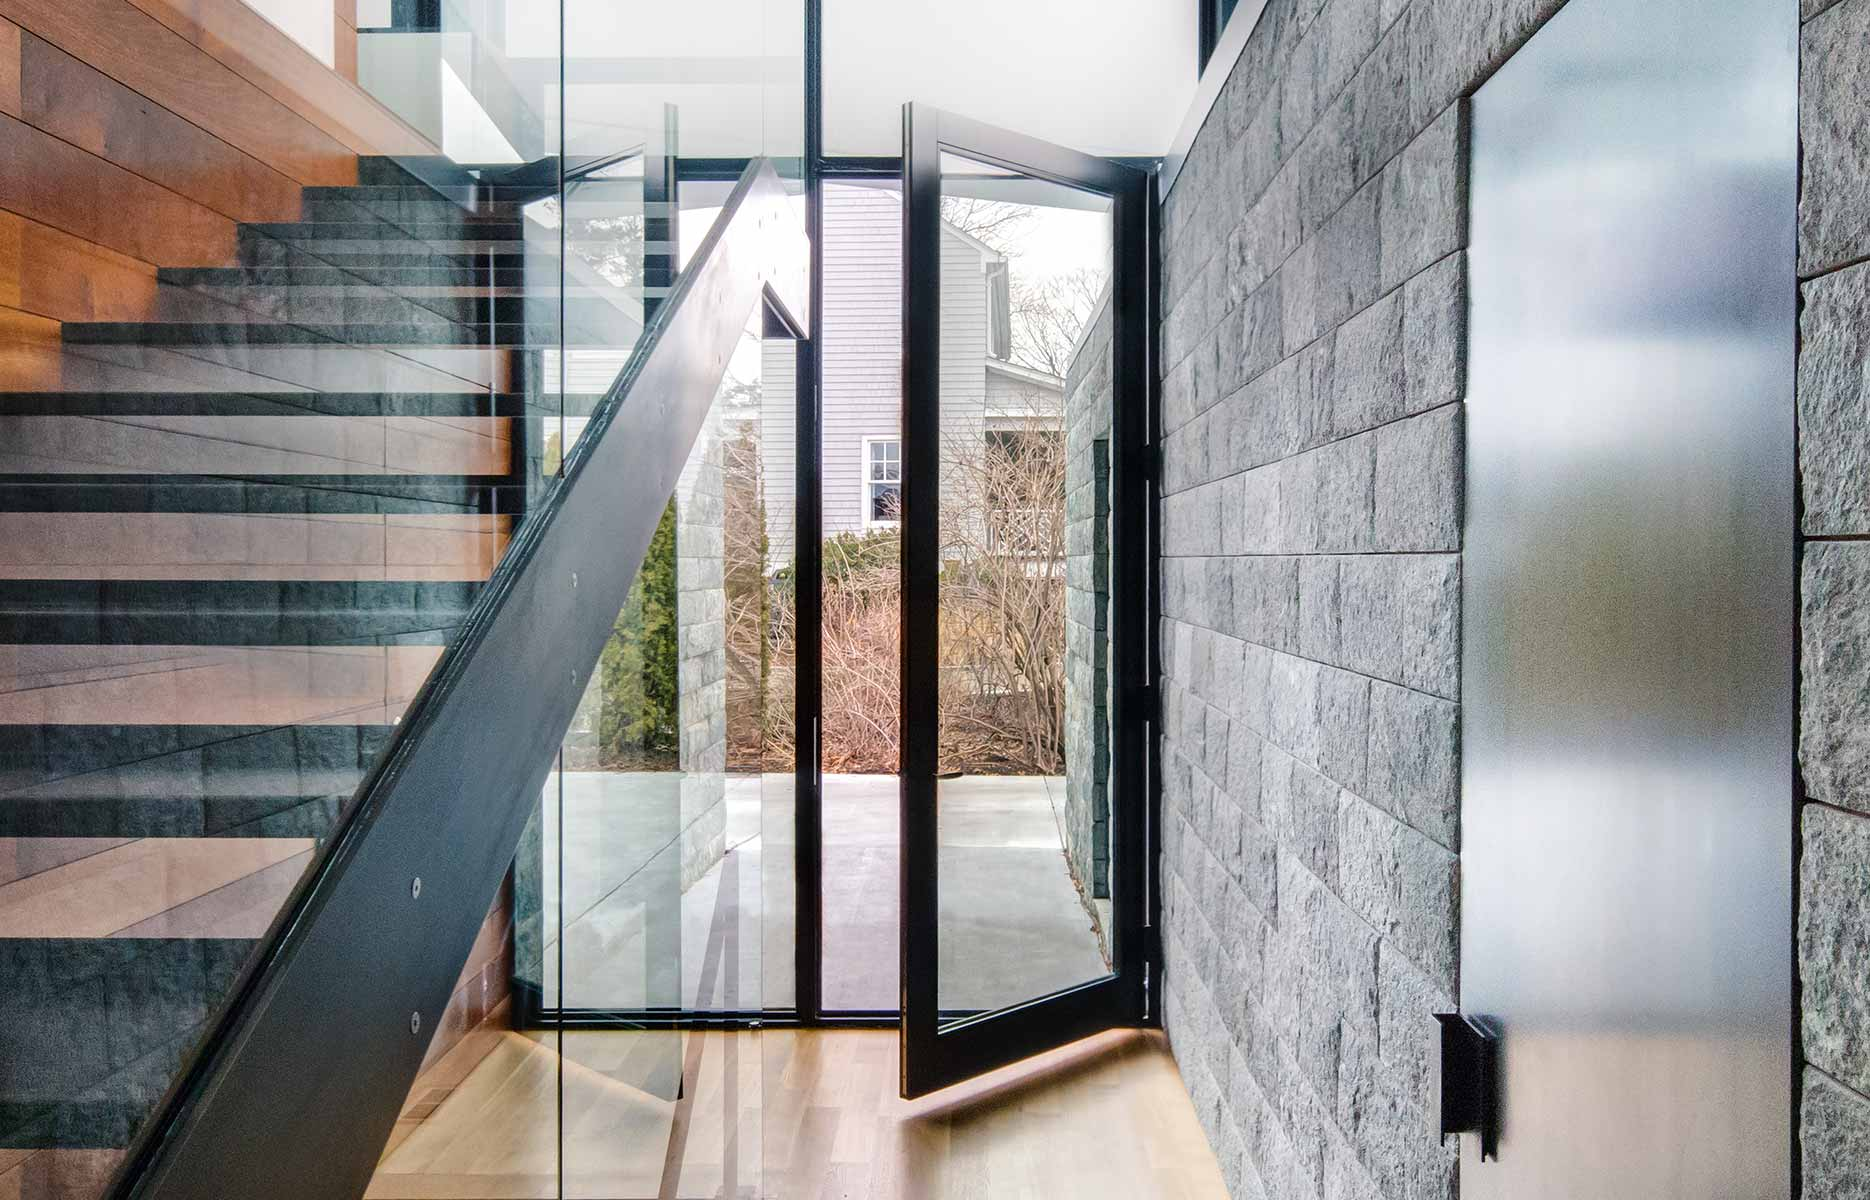 Series 900 Hinged Door Featured on Architizer